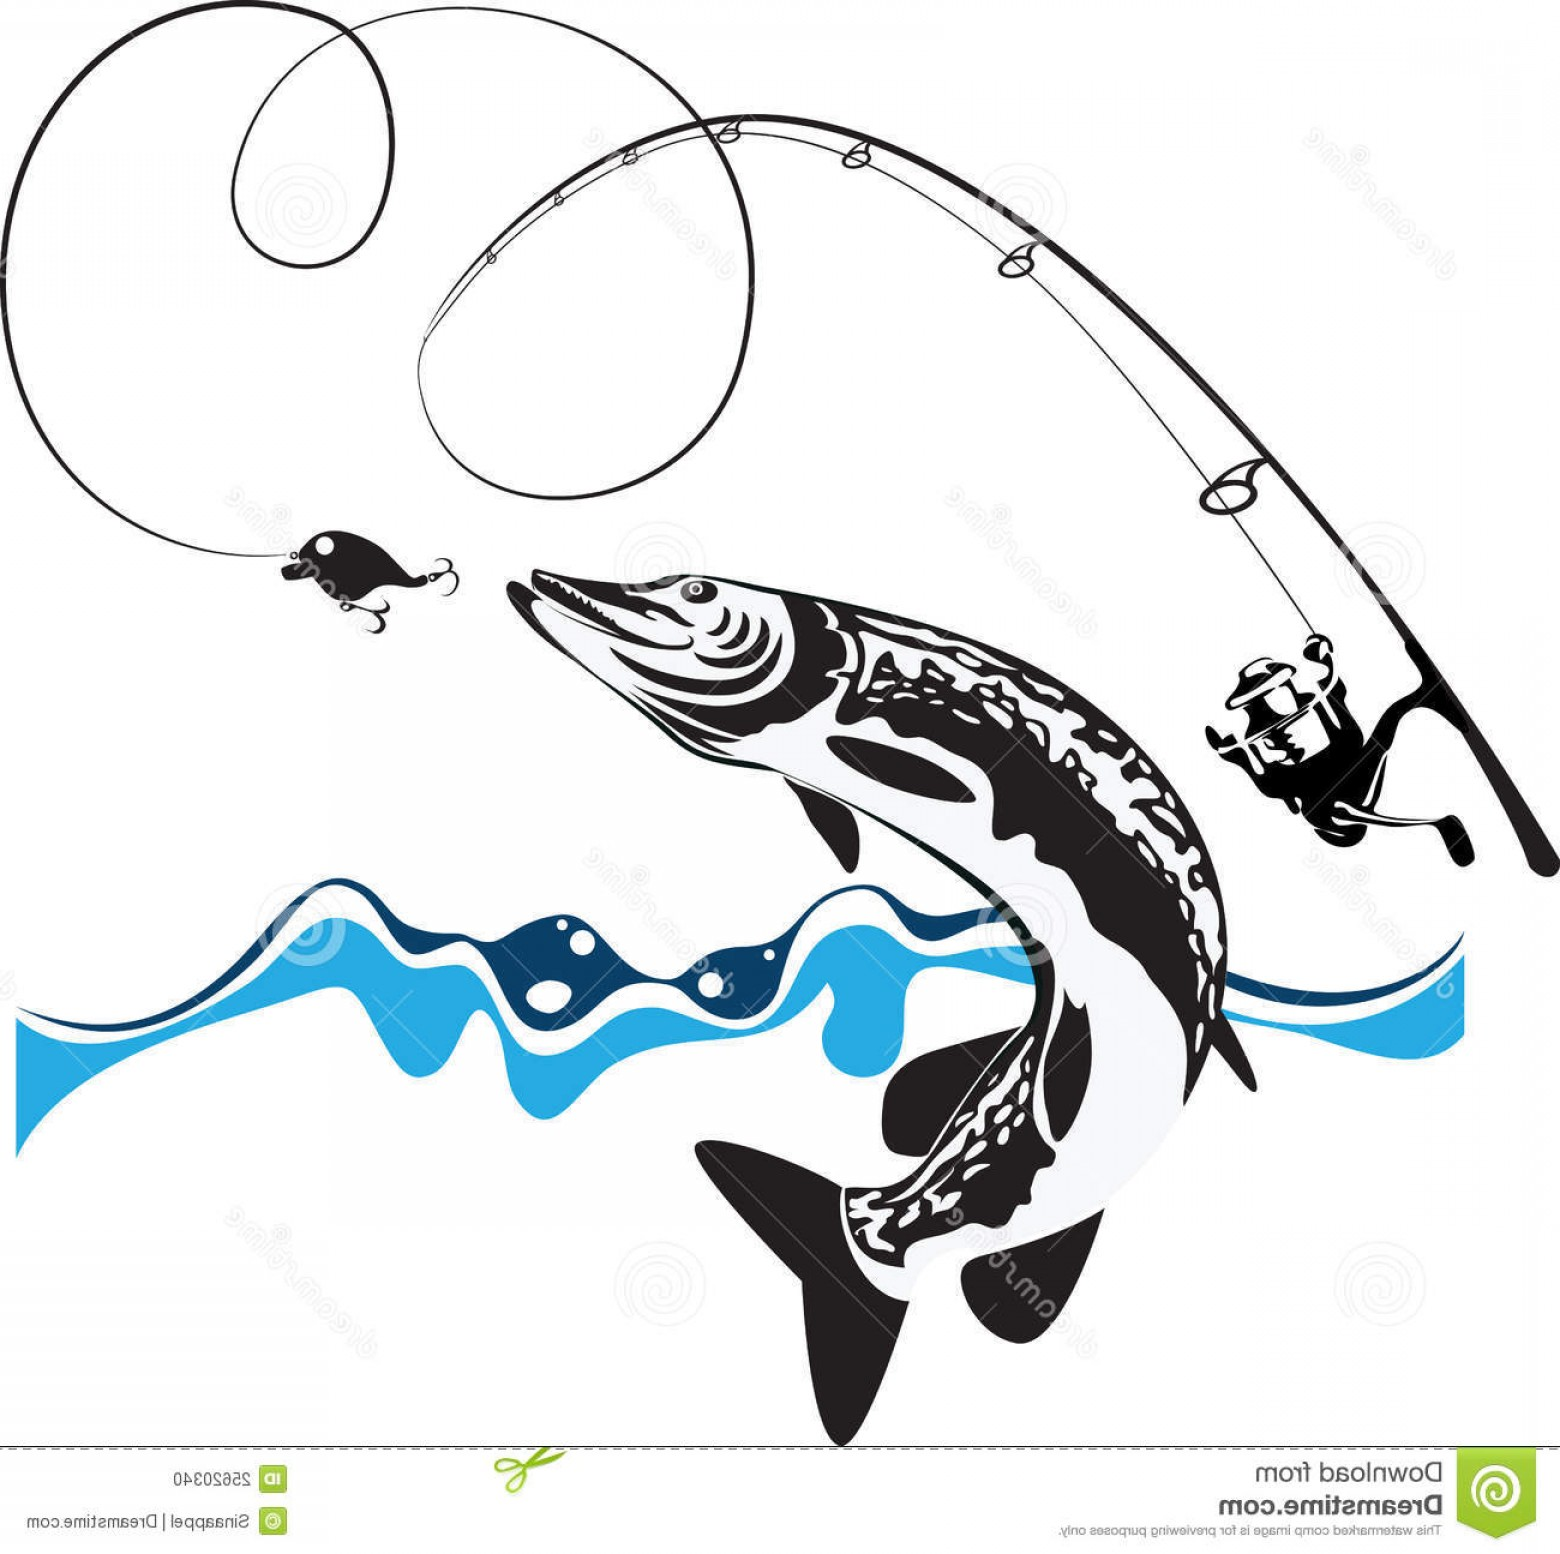 Rod And Reel Vectors: Stock Photo Pike Spinning Reel Wobbler Image